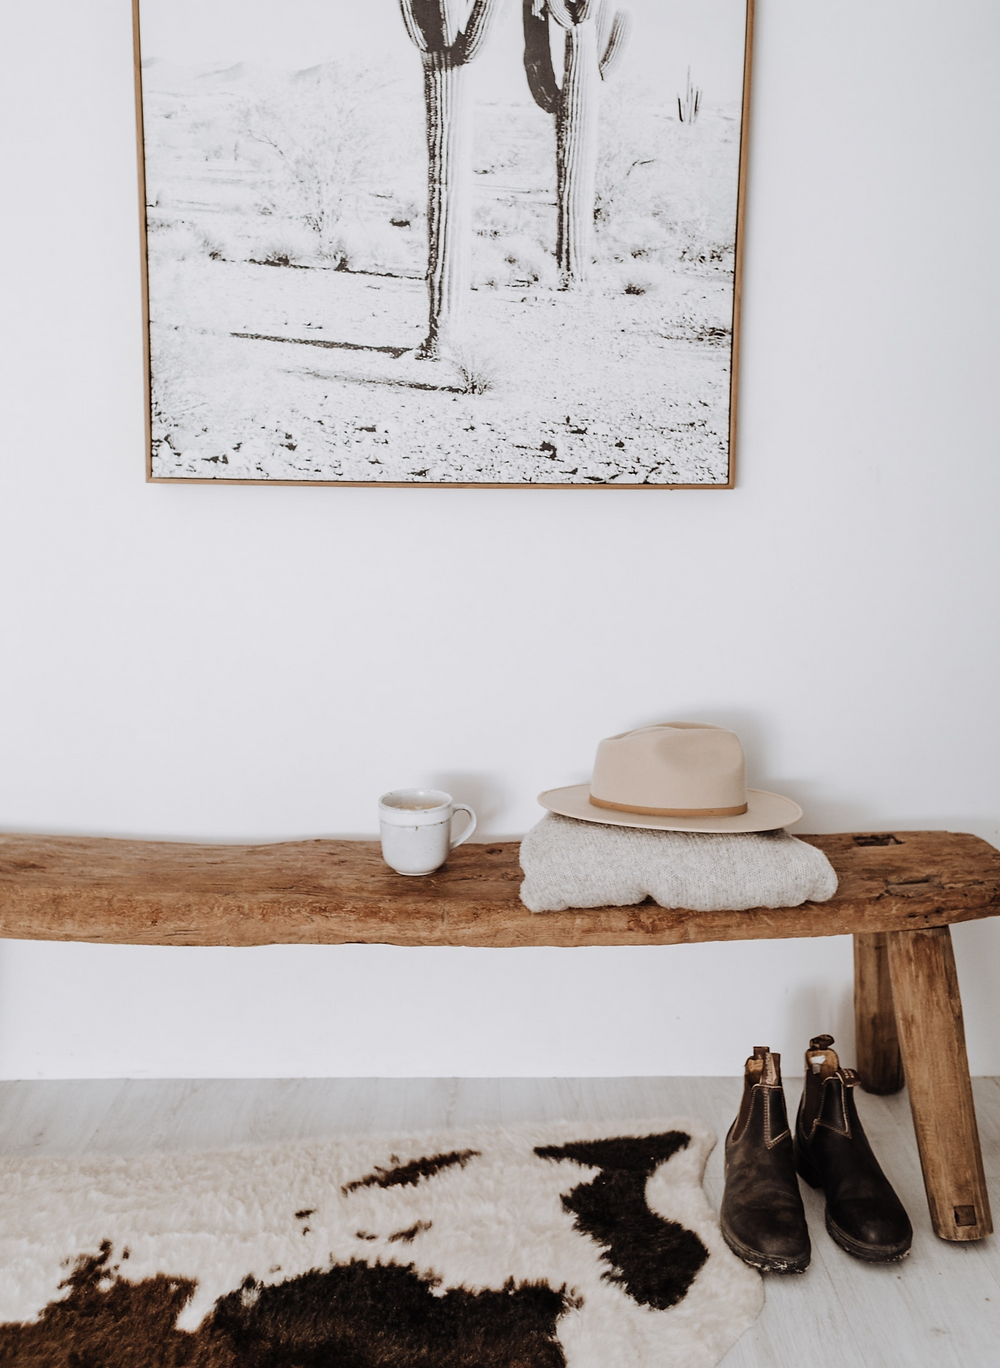 Modern rustic boho neutral home with white walls and raw wooden bench.